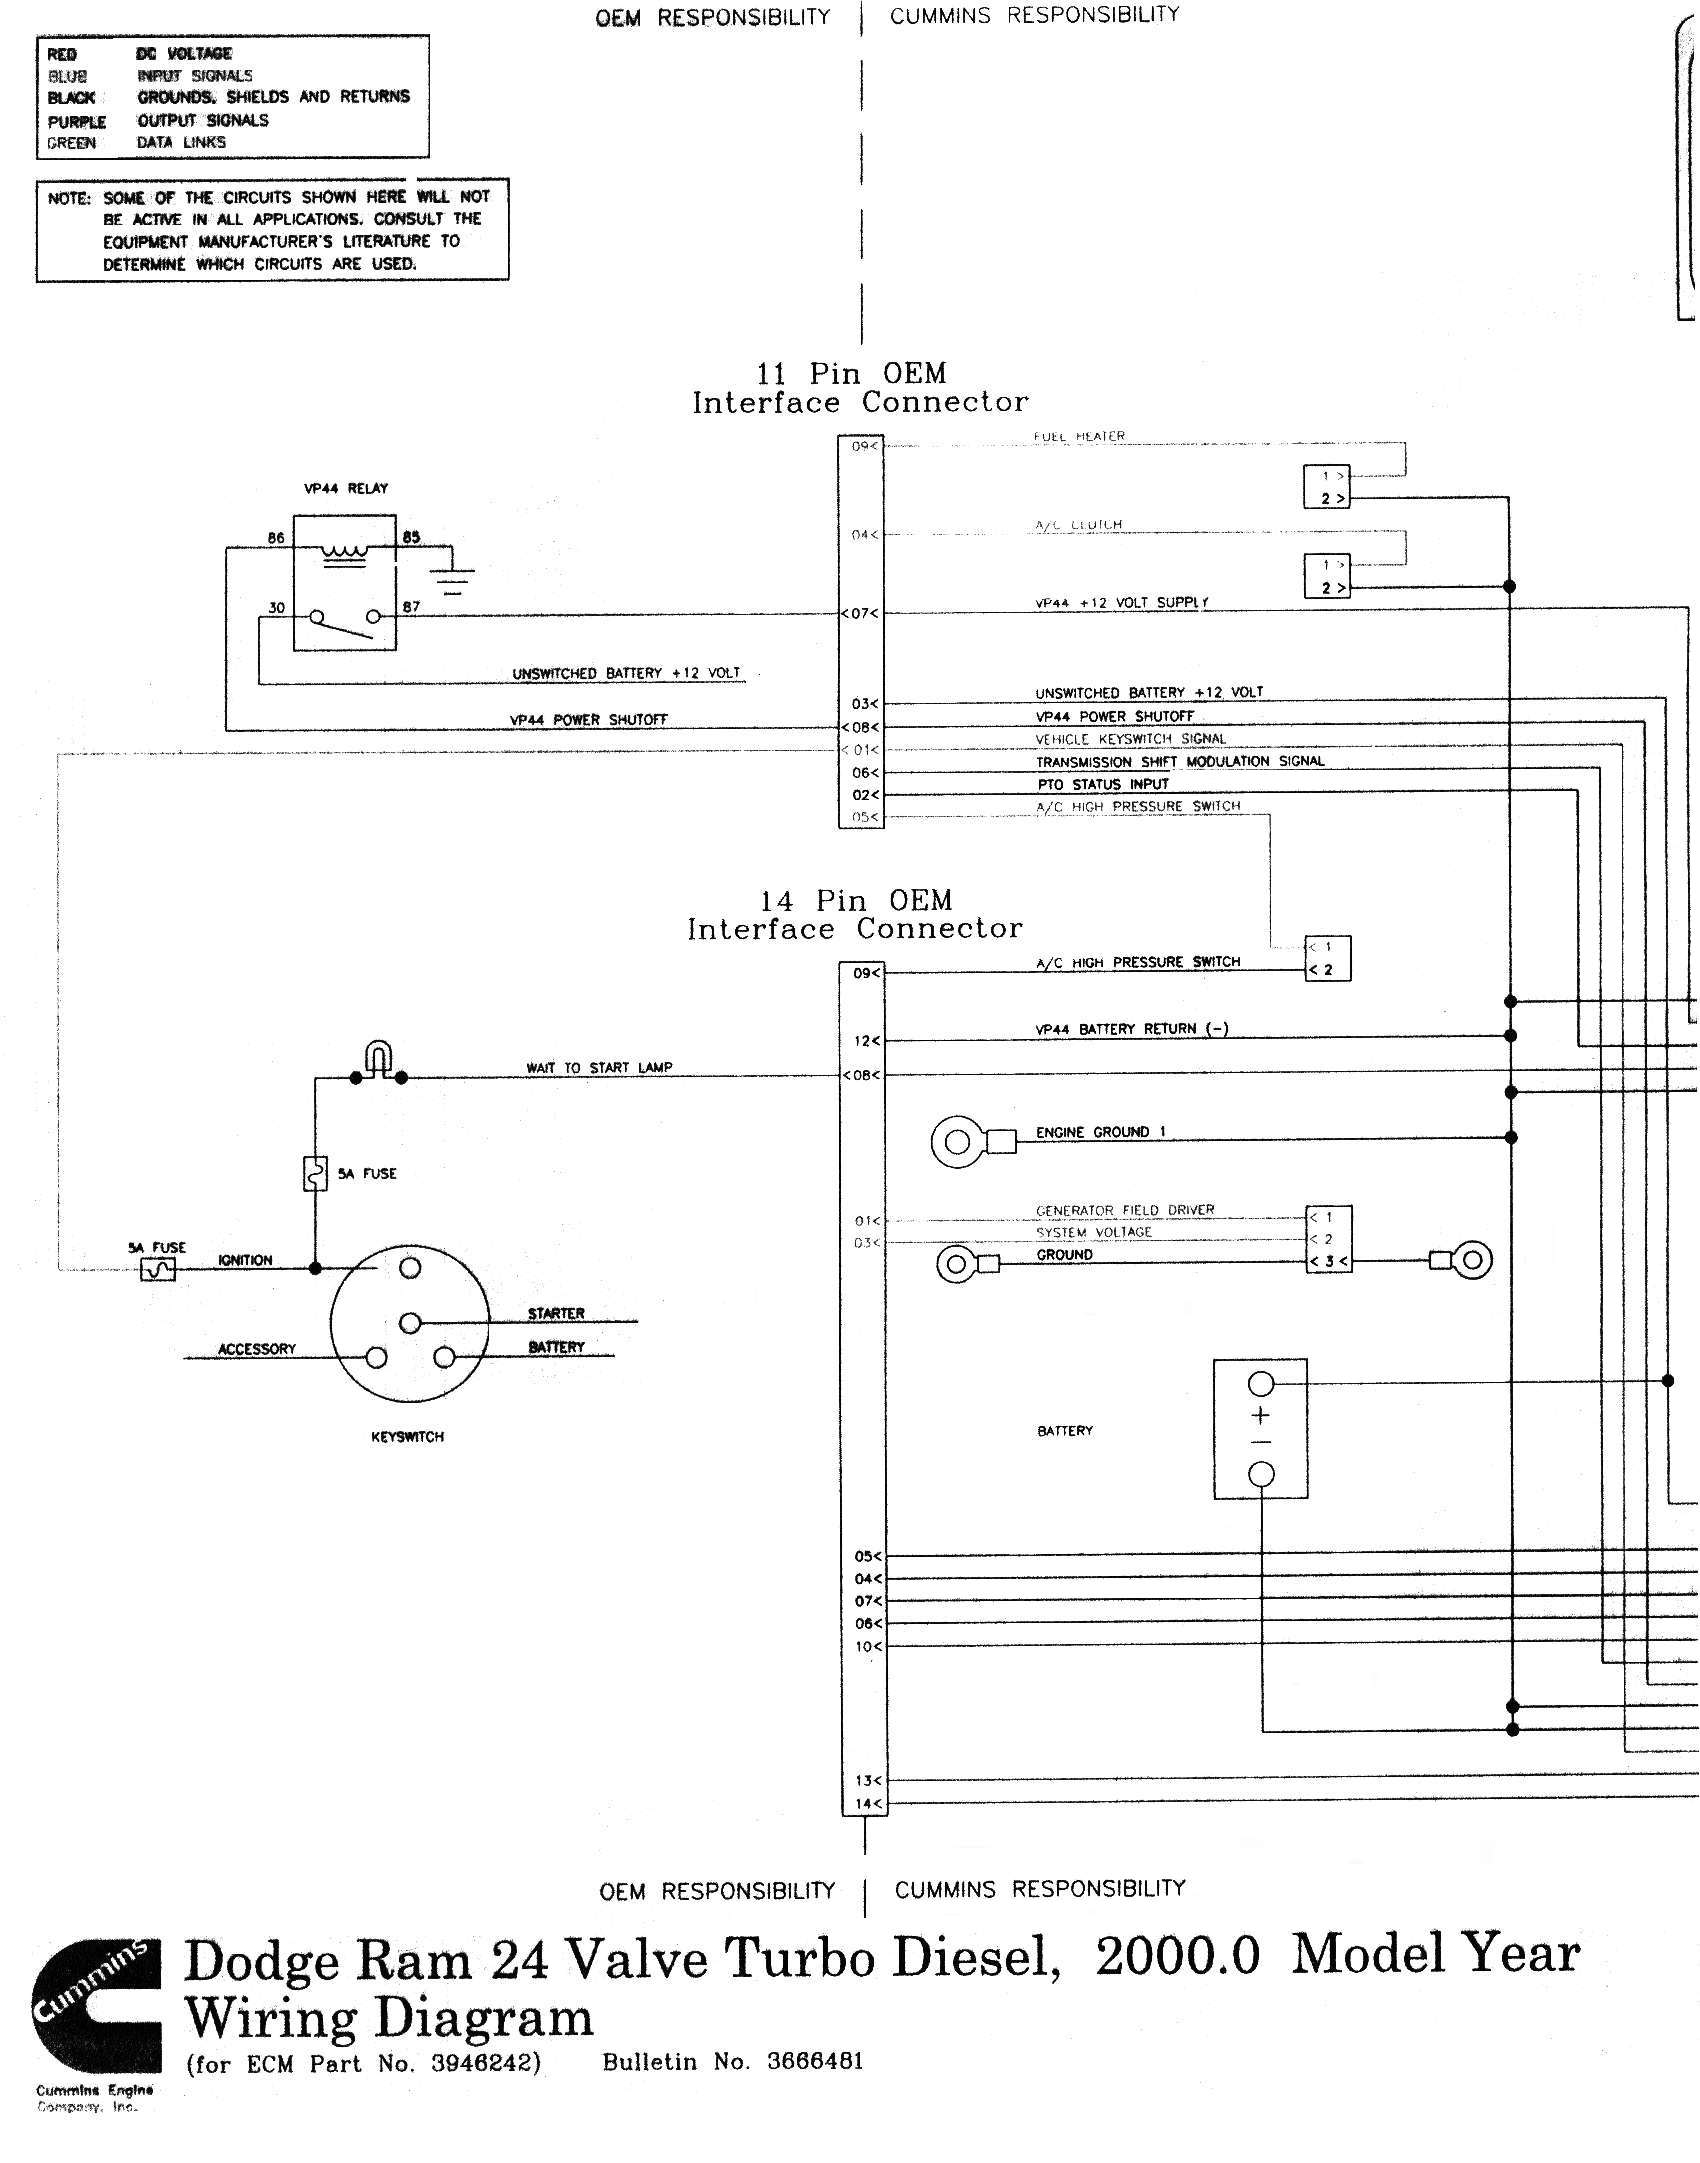 2001 Dodge Pick Up Wiring Diagram Wiring Diagram Region Day Region Day Emilia Fise It